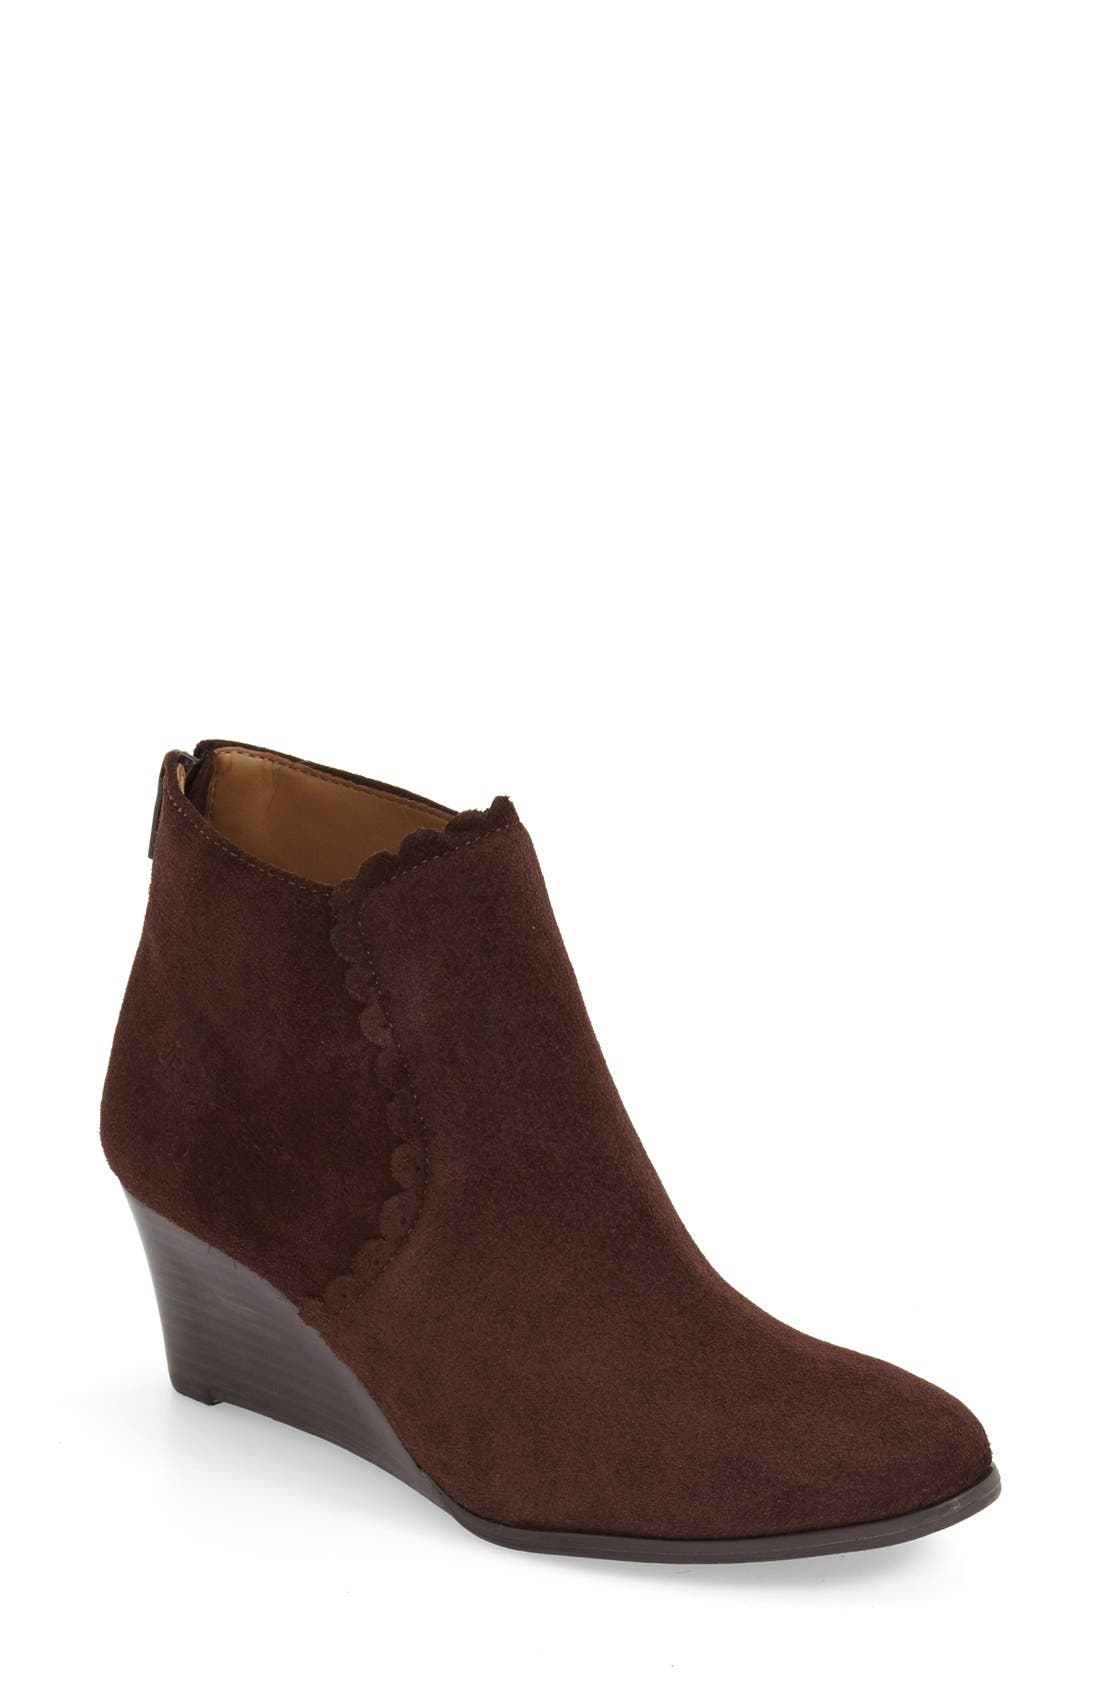 Alternate Image 1 Selected - Jack Rogers 'Emery' Wedge Bootie (Women)